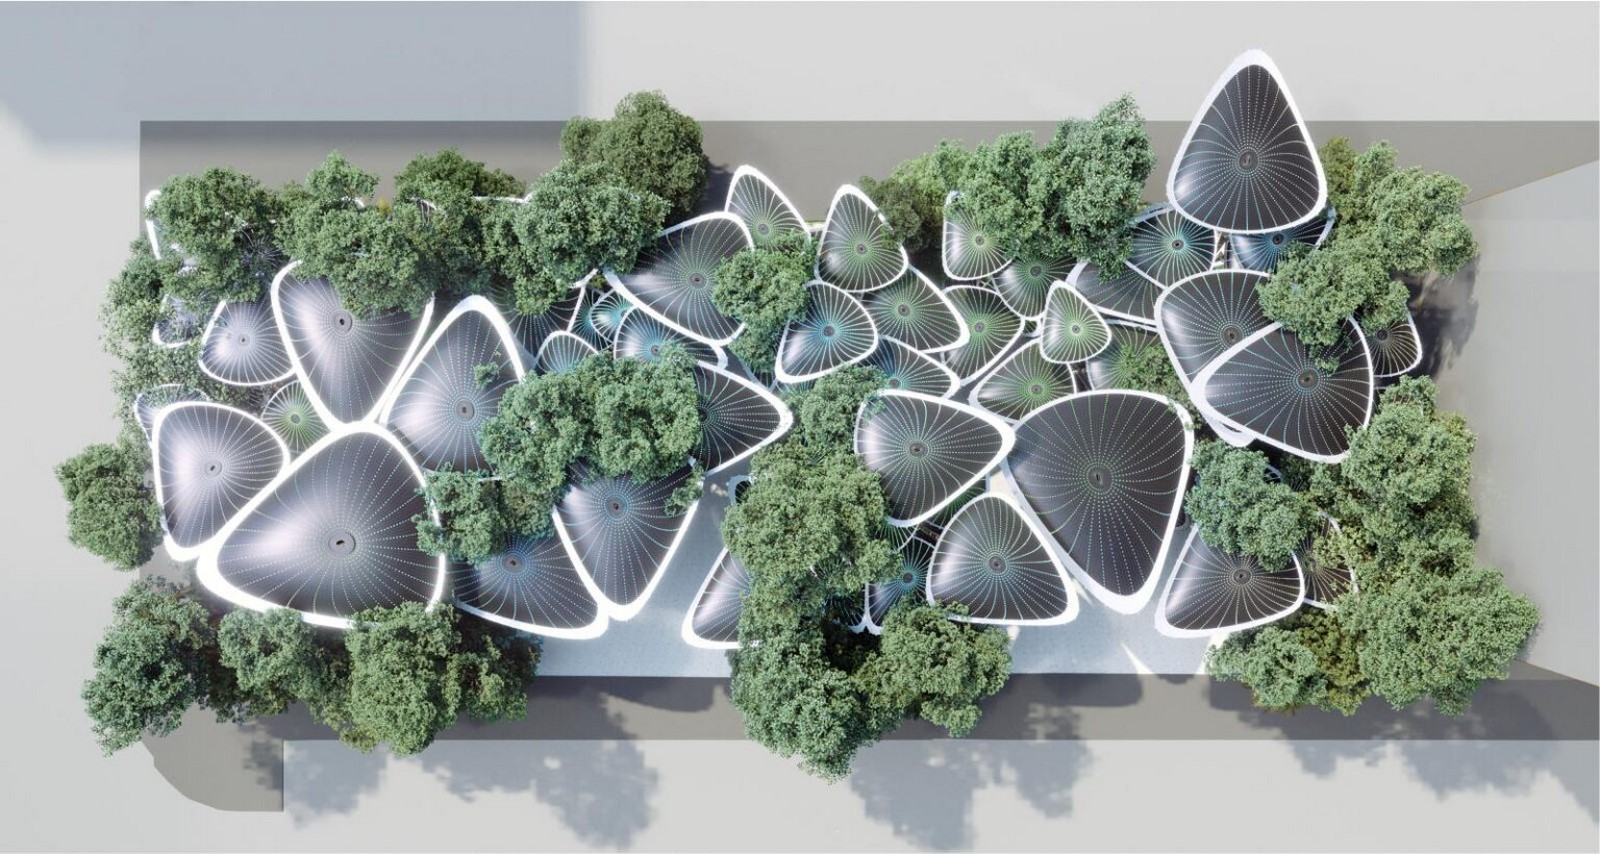 Cooling Stations for Abu Dhabi's Urban Heat Island designed by Mask Architects - Sheet4